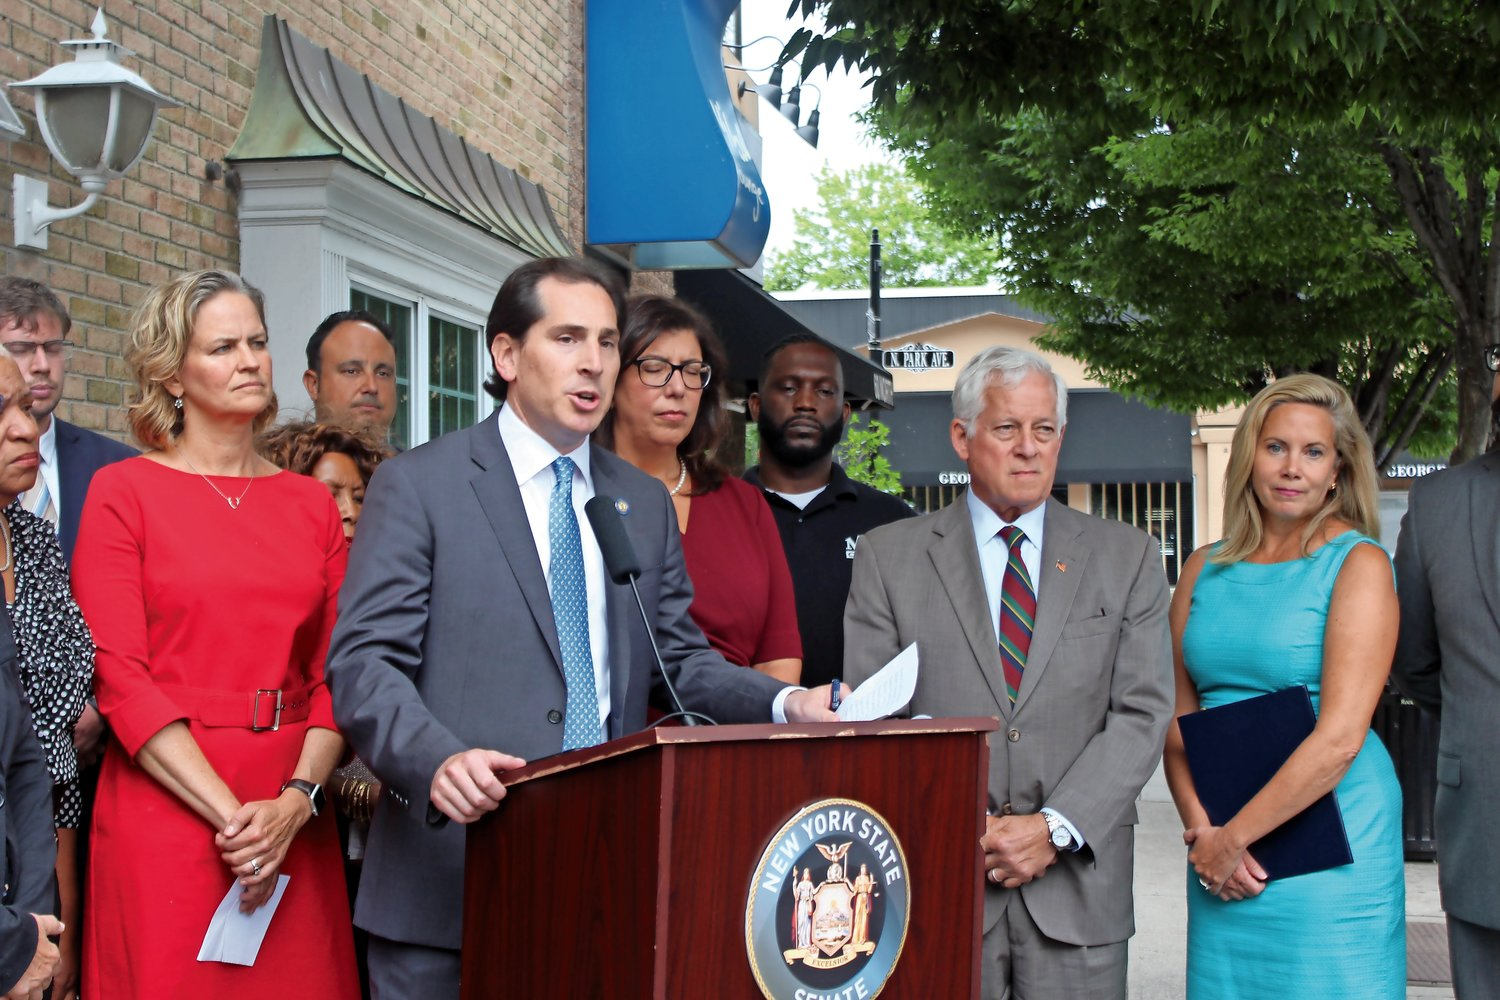 State Sen. Todd Kaminsky, center, and Assemblyman Charles Lavine, right, introduced legislation that would mandate education about the swastika and noose for students in grades six through 12.